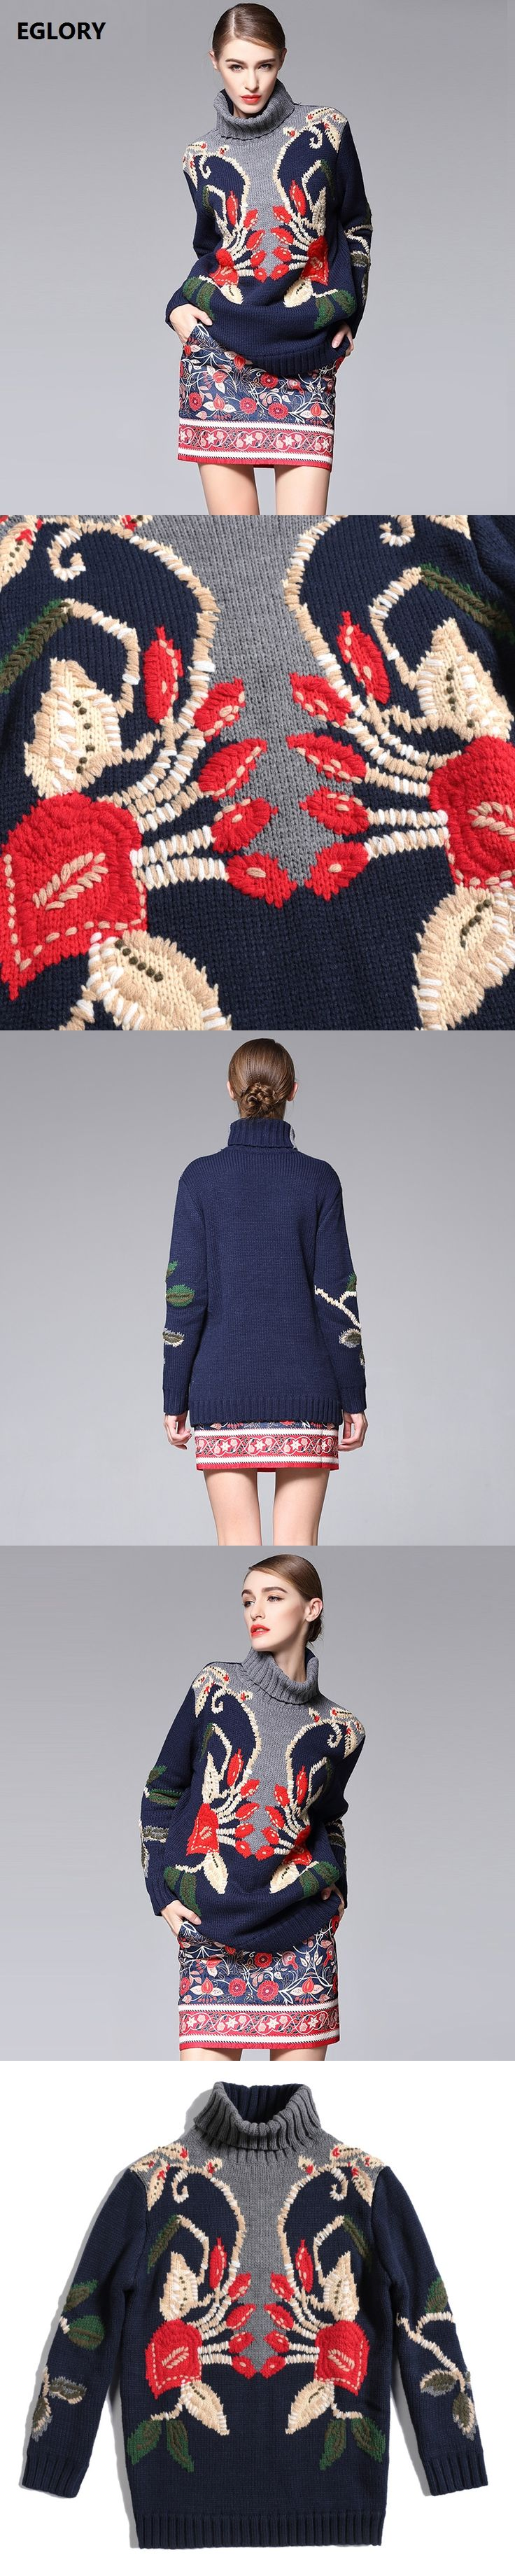 High Quality Women Clothing Winter Sets Ladies Turtleneck Hand Made Embroidery Vintage Sweaters+Jacquard Print Short Skirt Suit